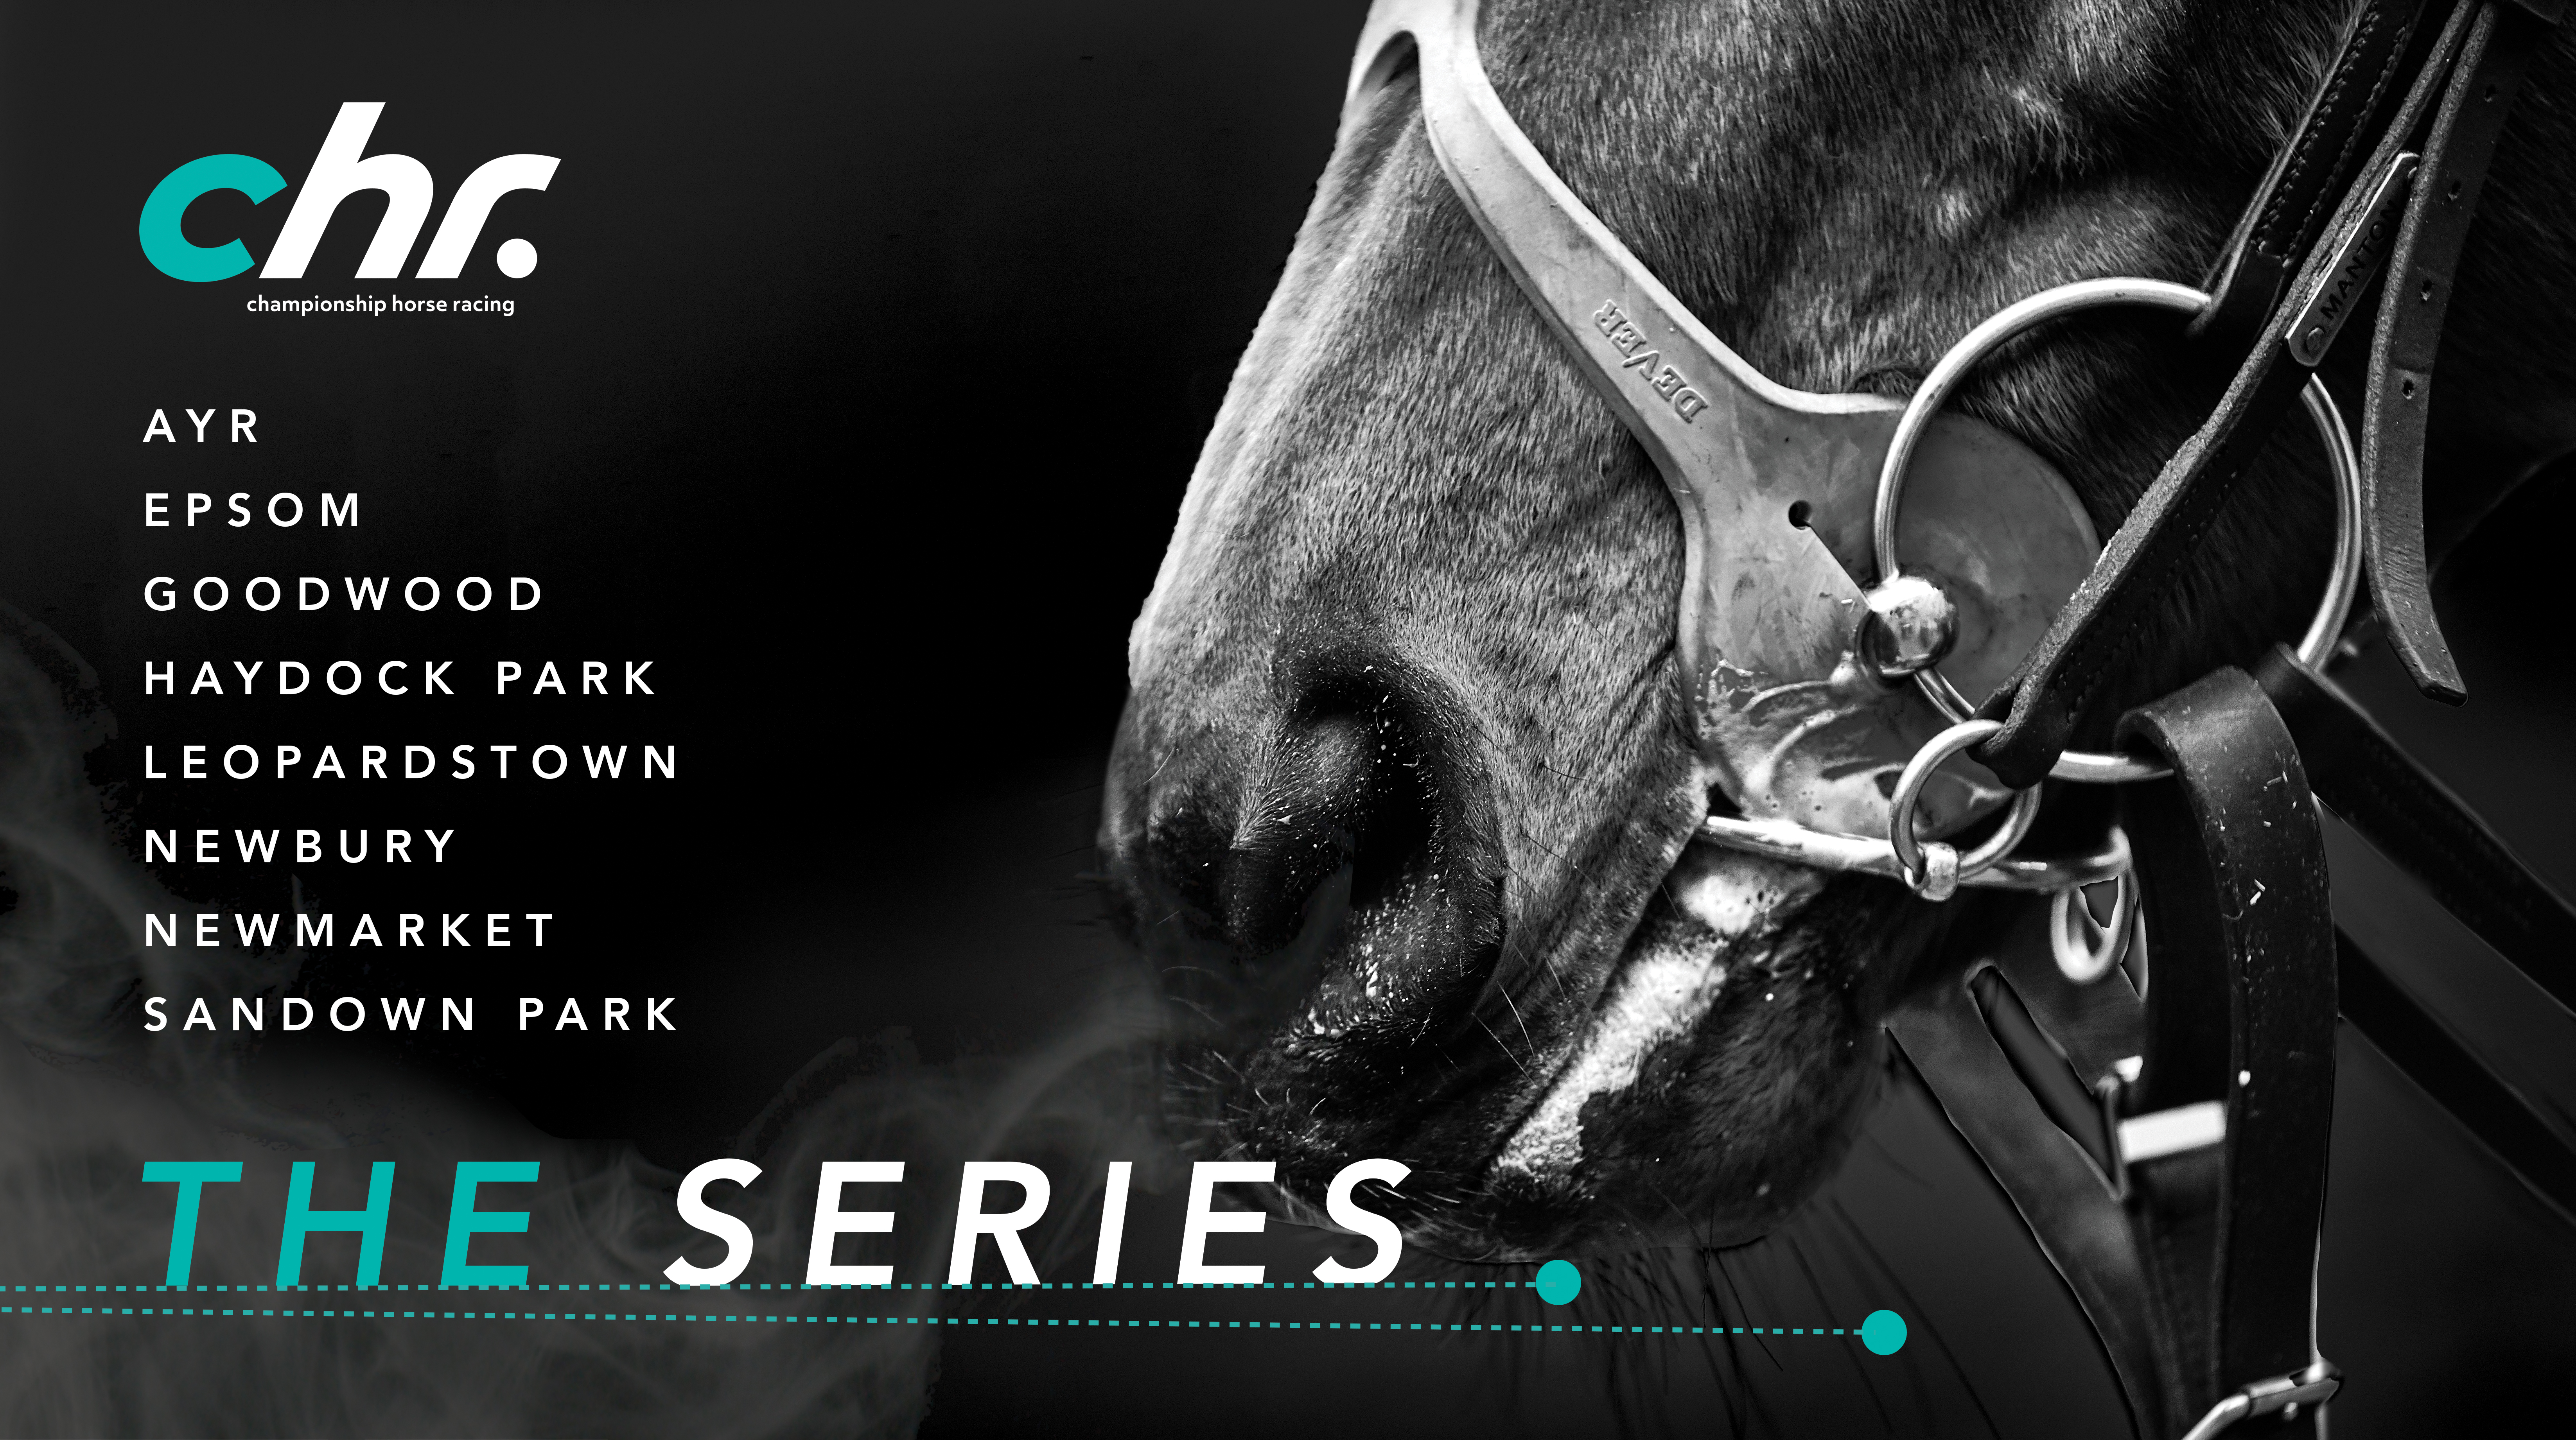 Eight of the top racecourses in England, Ireland and Scotland set to host 'The Series'